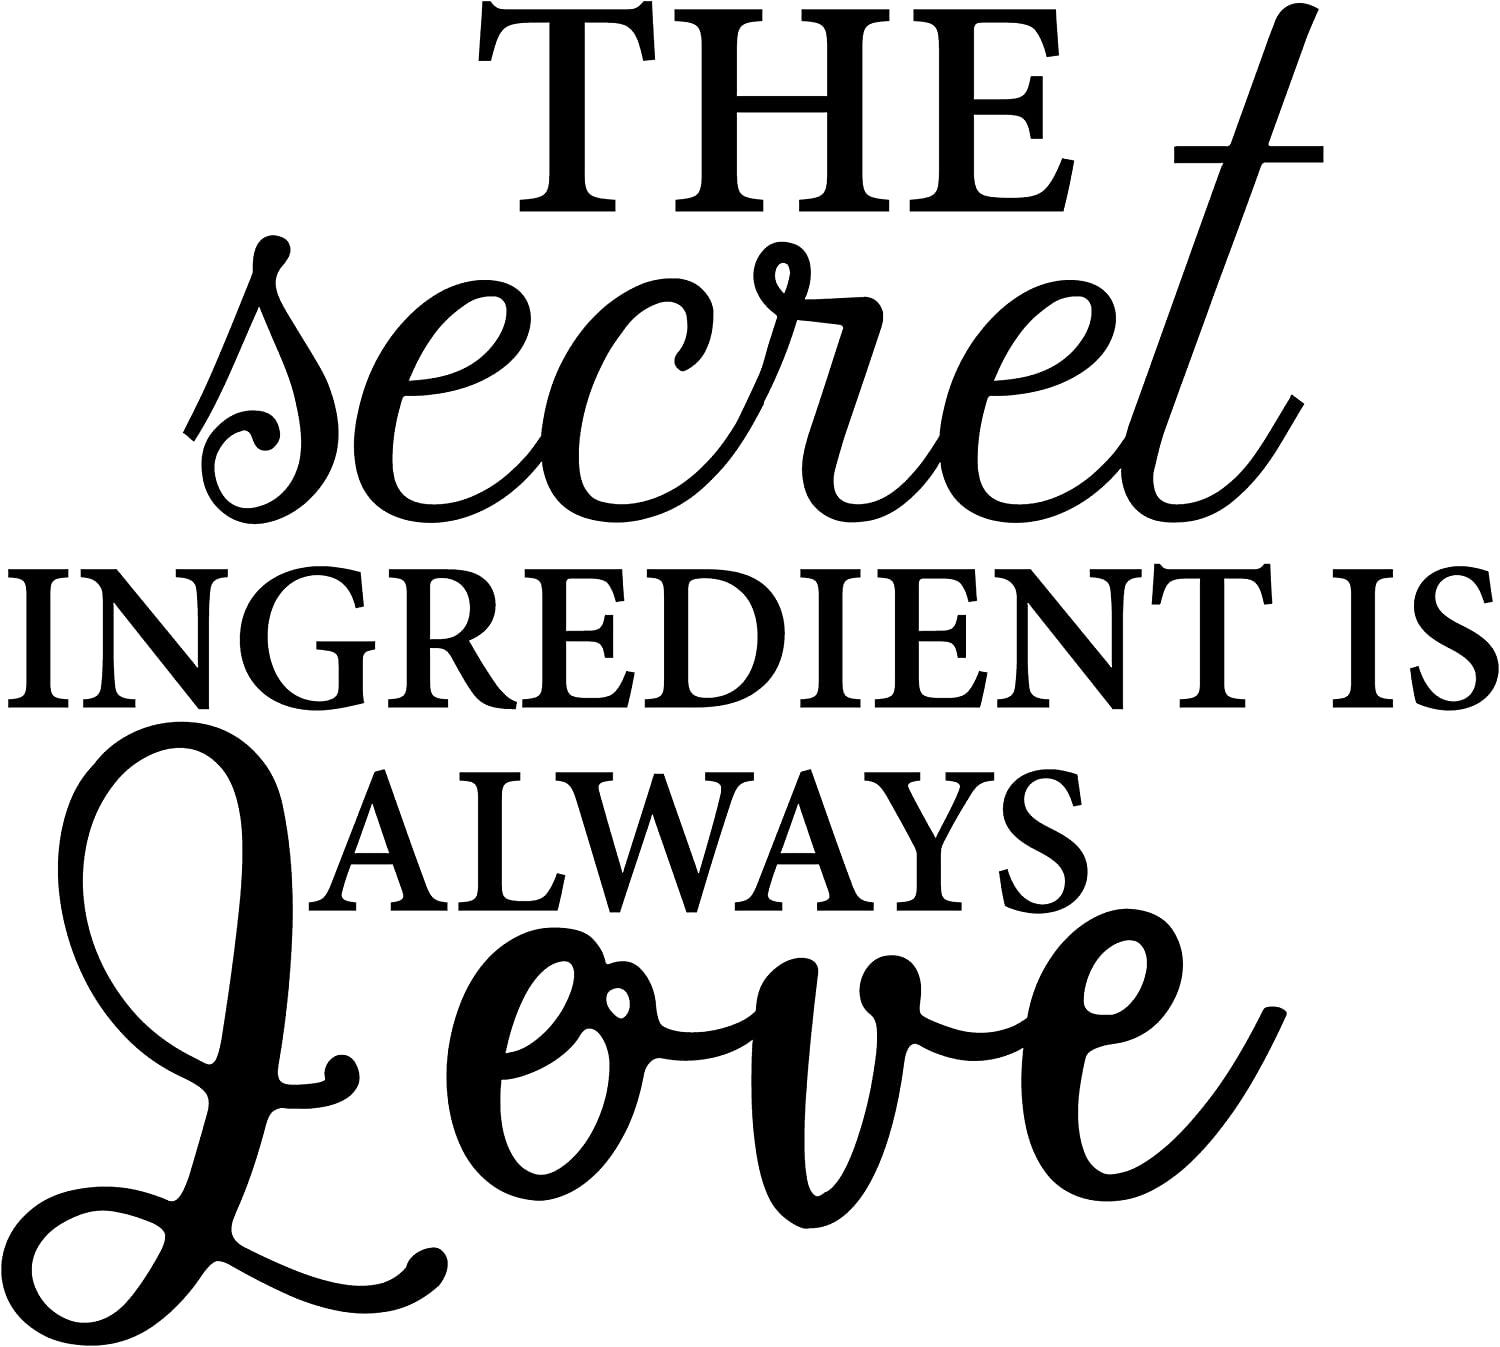 My Vinyl Story - The Secret Ingredient Is Always Love - Decor Kitchen Wall Decals Quote for Family Dining Room Home Decoration Art Words and Saying Sticker Sign Family Decor Removable Vinyl Lettering Gift Words and Sayings